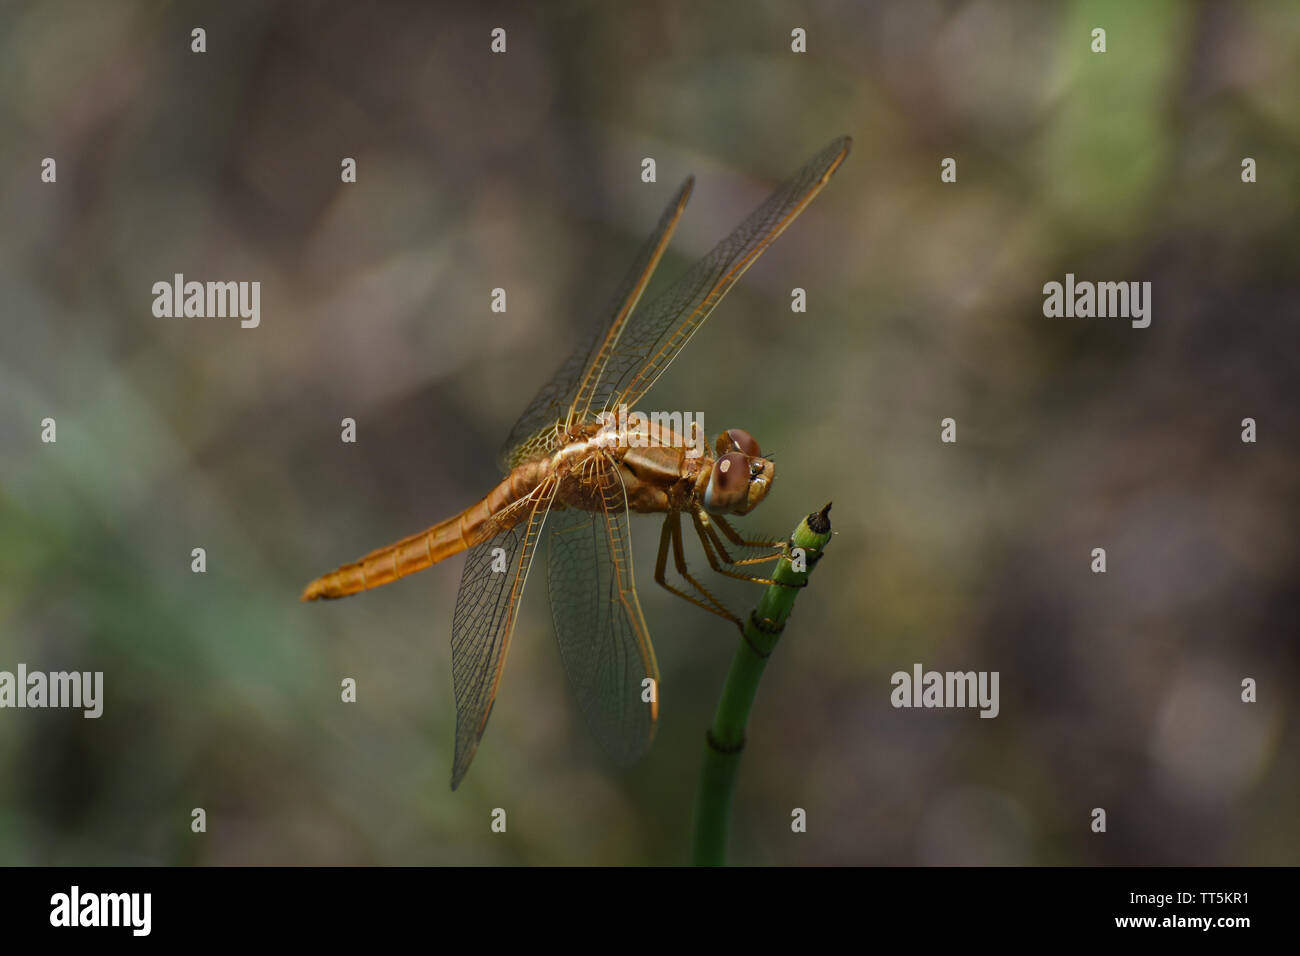 Large Broad Scarlet Dragonfly (Crocothemis erythraea) On Horsetail Grass Stock Photo